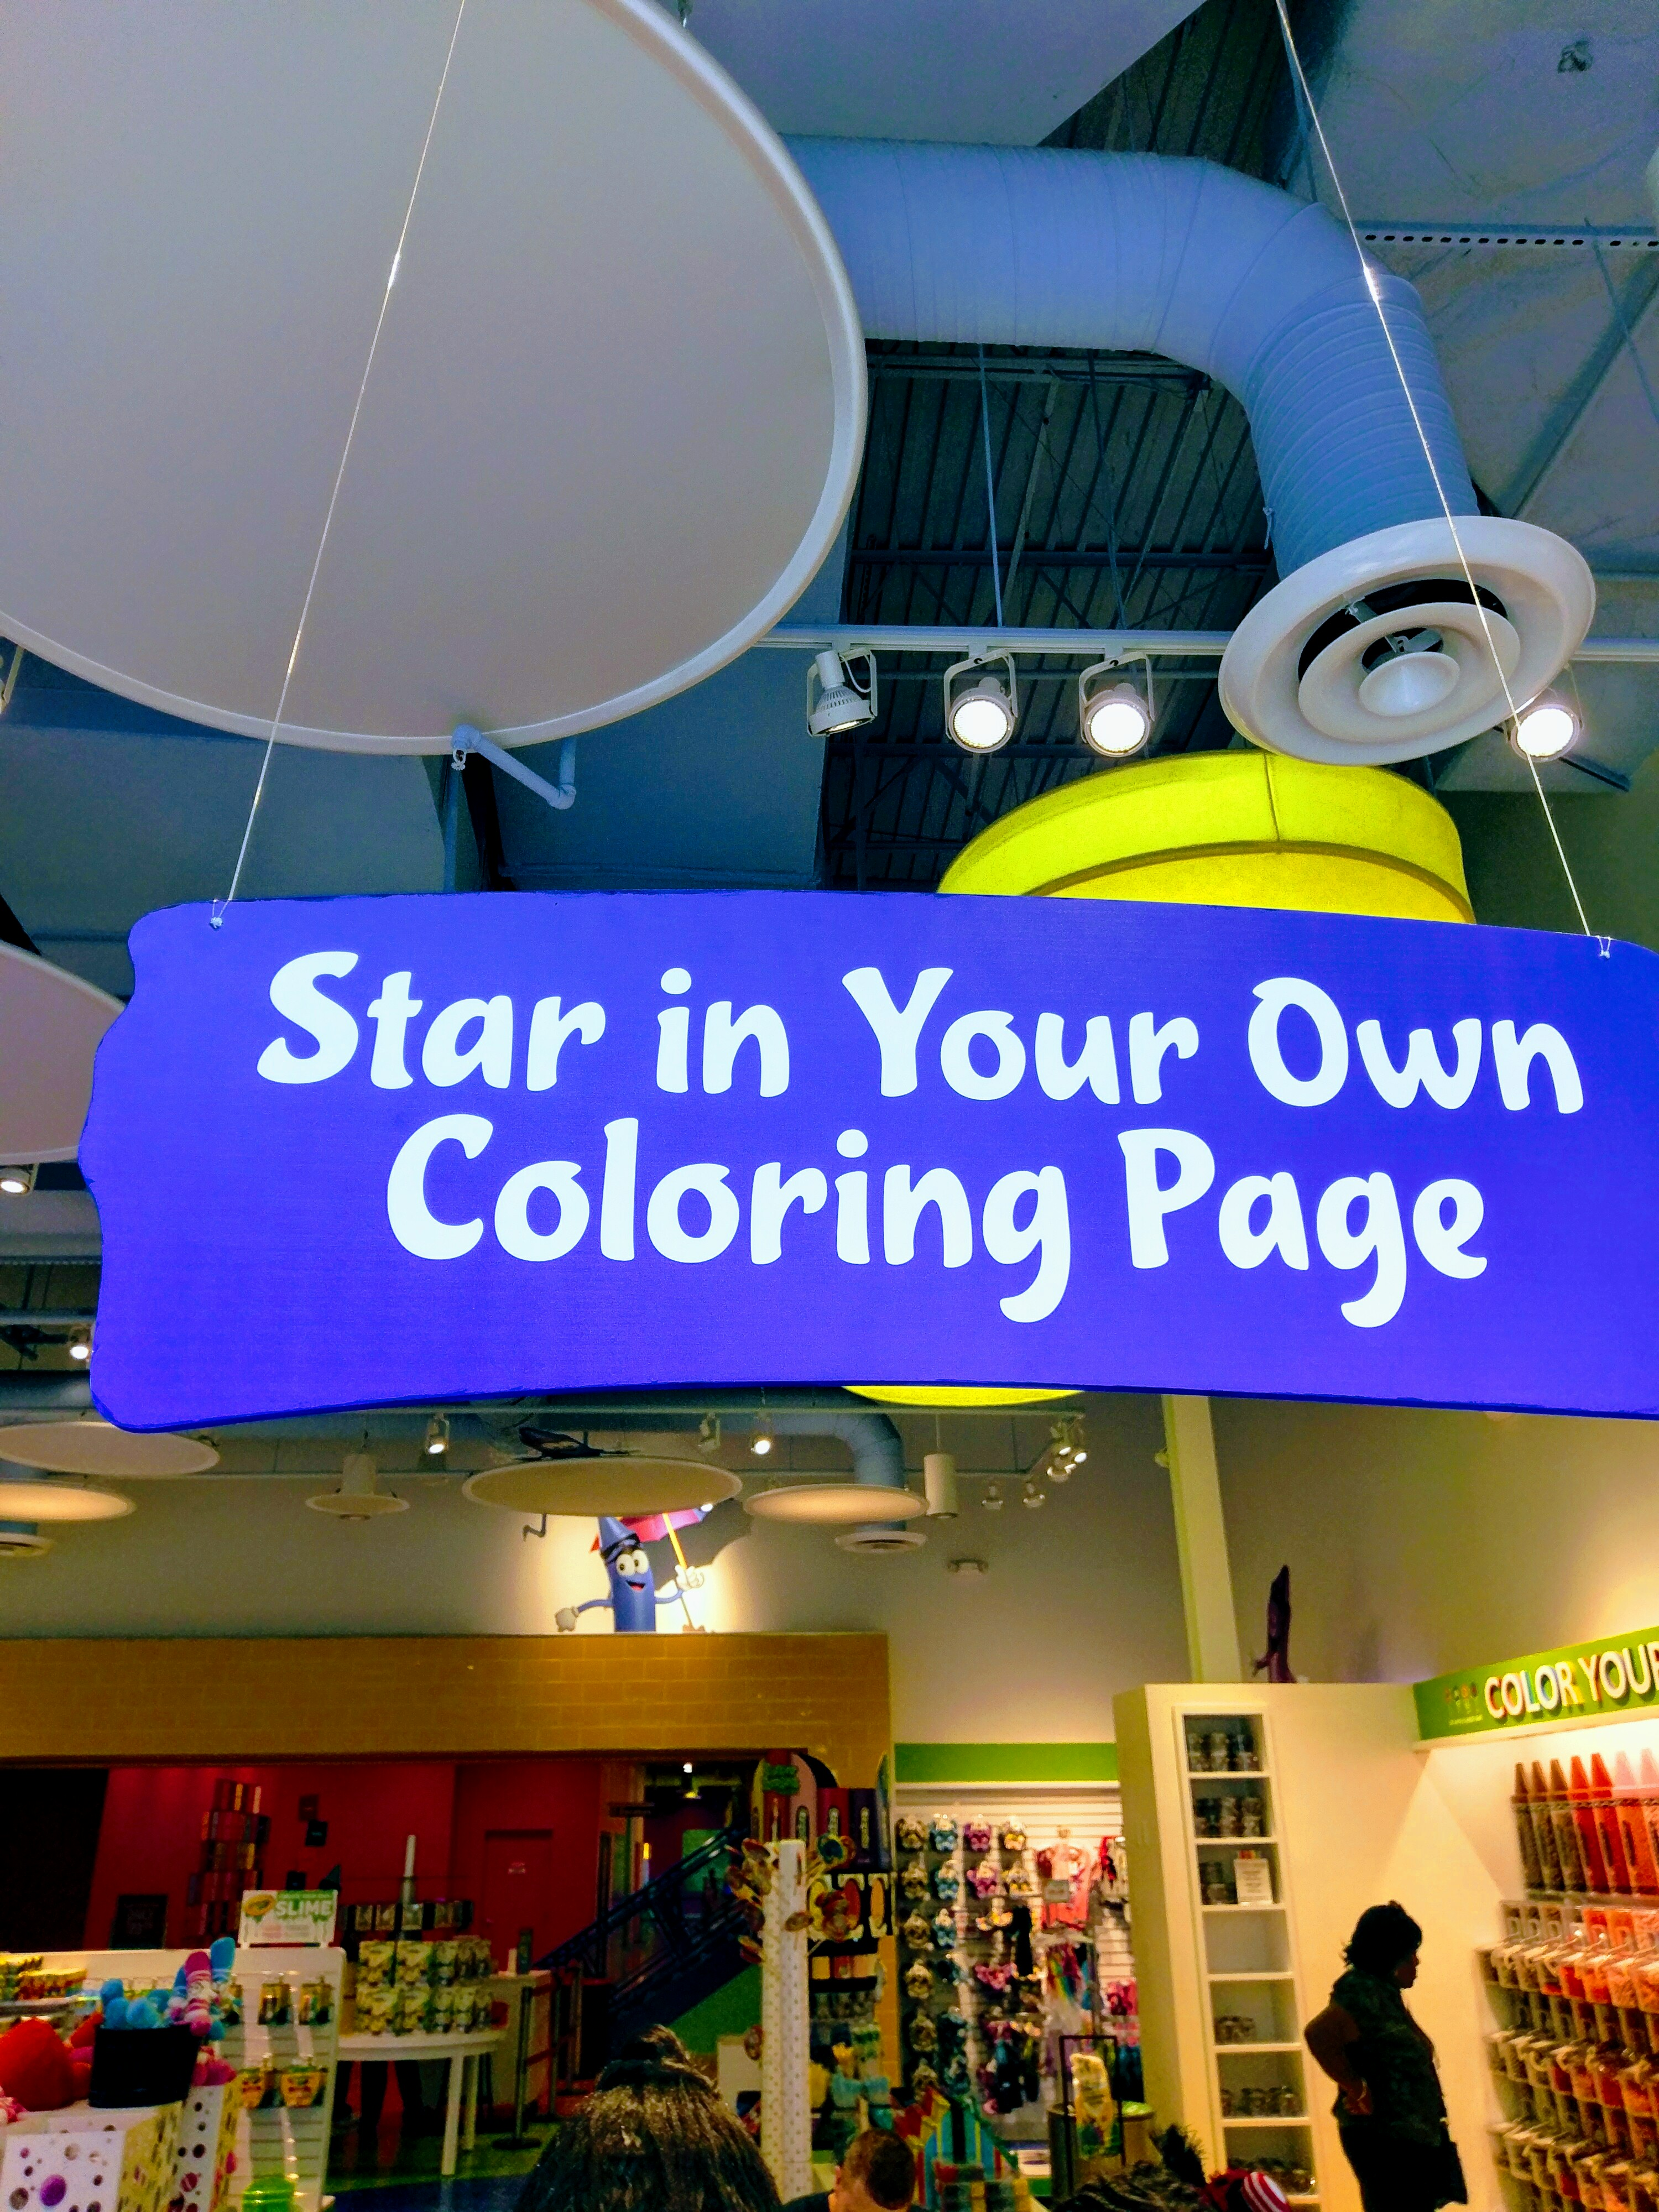 Star in your own colouring page at the Crayola Experience shop, Orlando